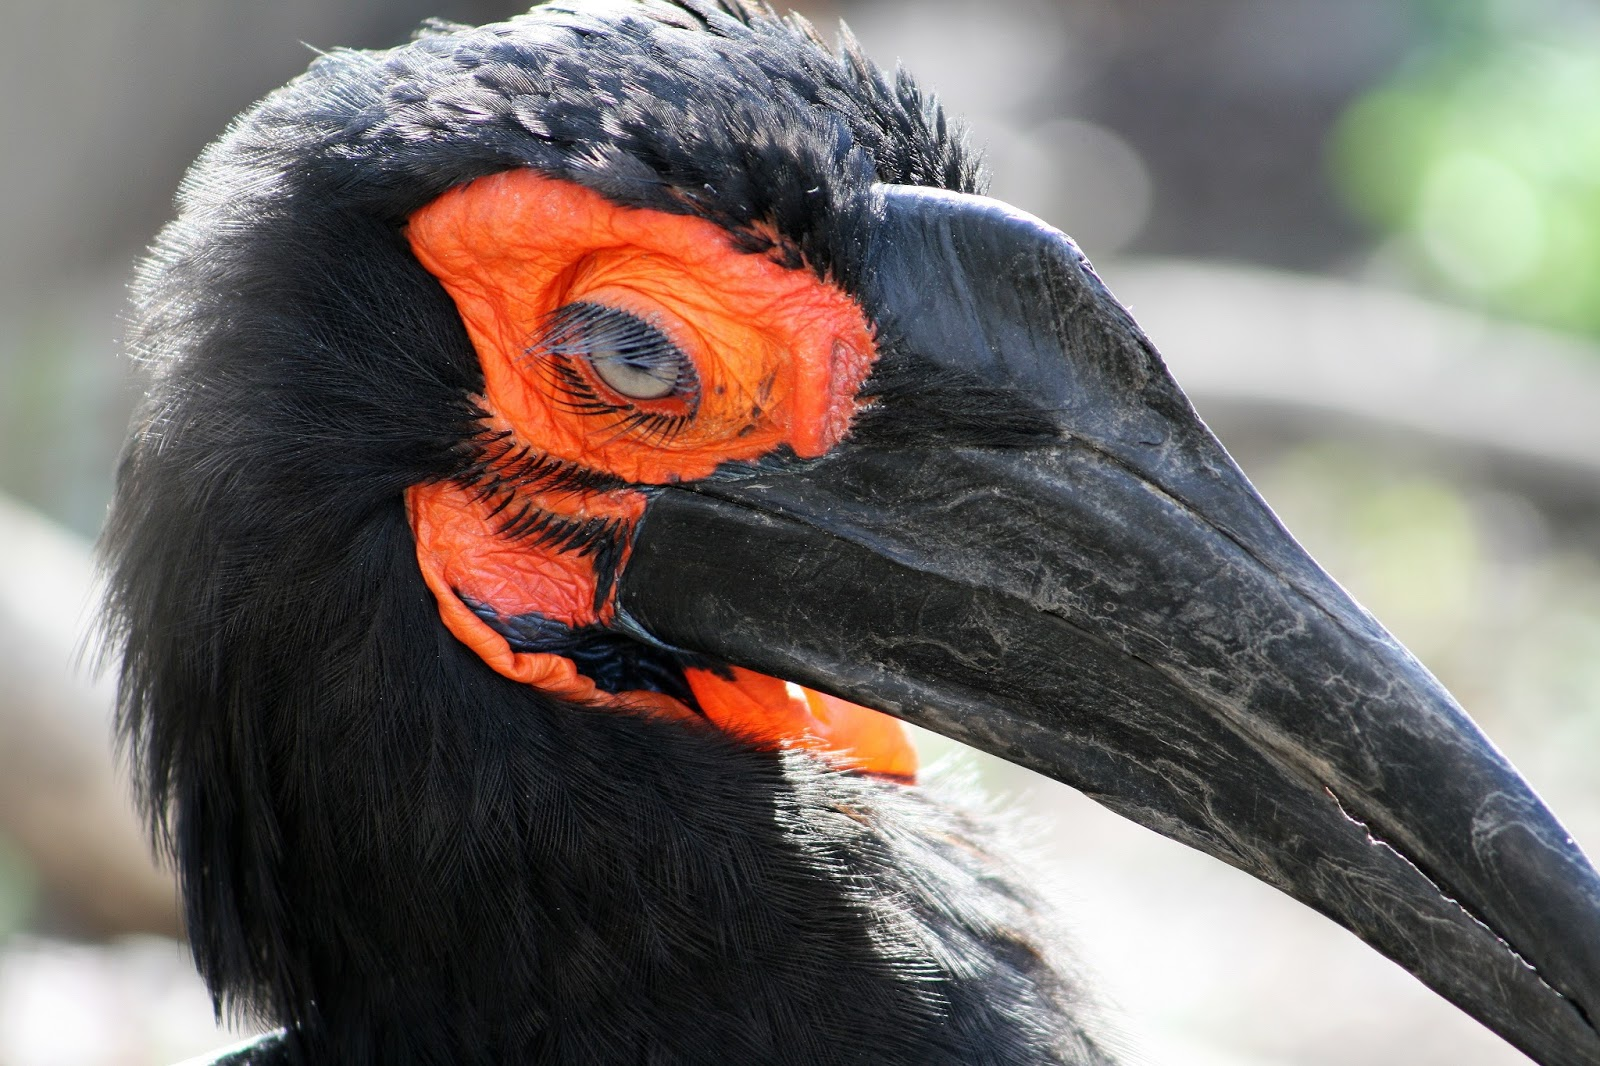 Southern ground hornbill-The bird that invented long eye lashes.